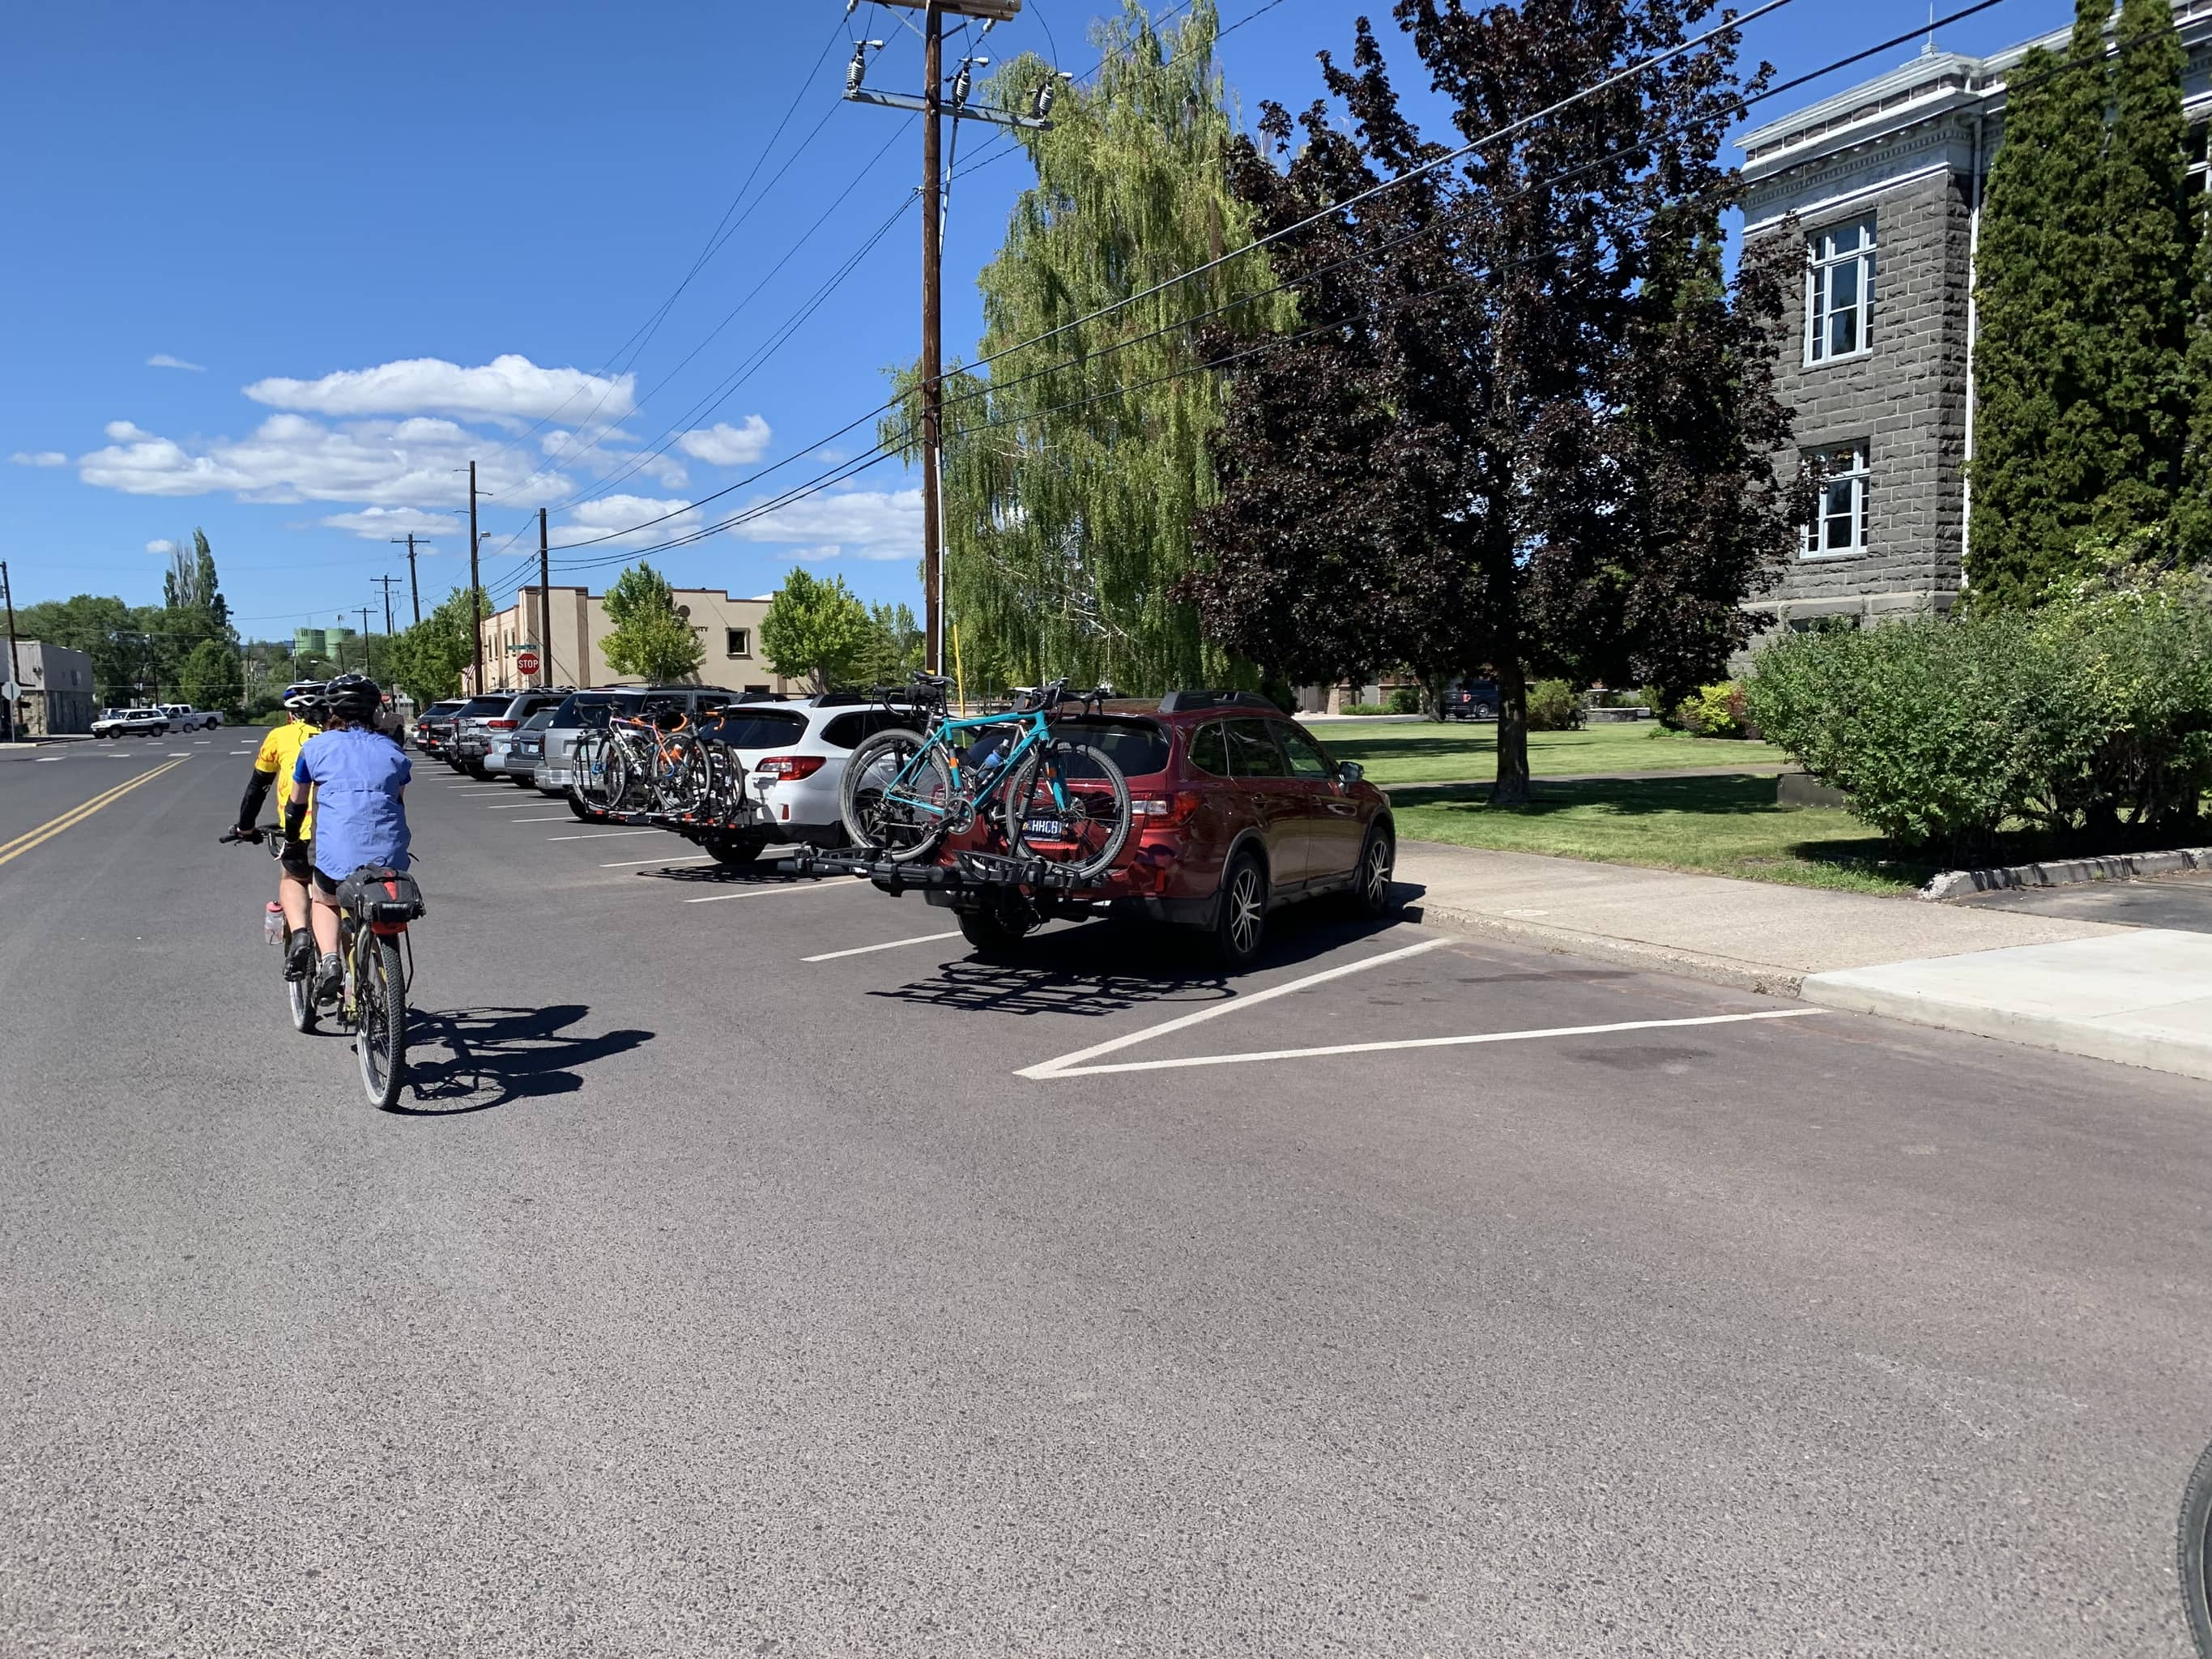 Cyclists parked near the Crook County courthouse and Good Bike Co.